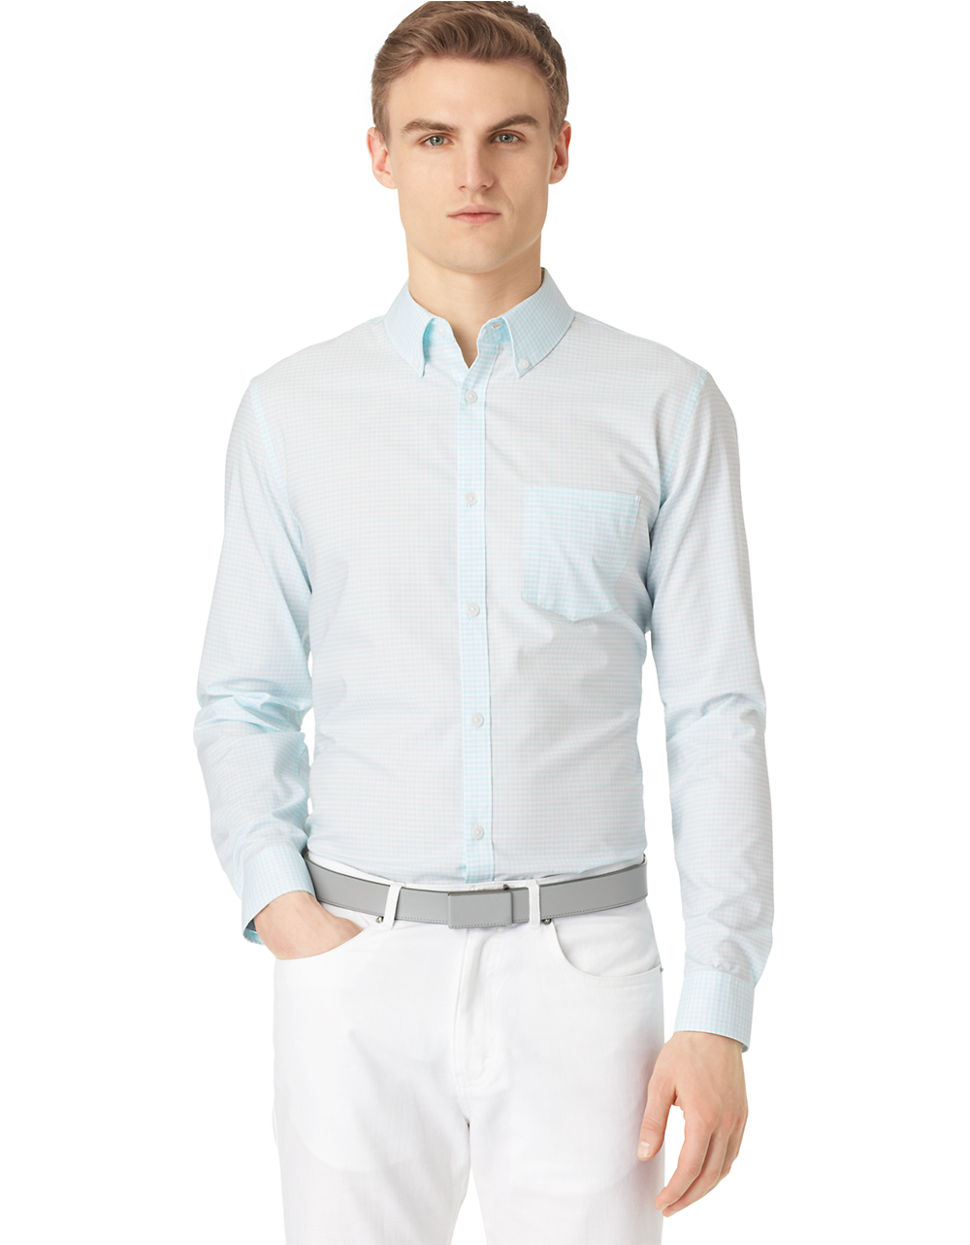 calvin klein checkered sport shirt in blue for men light sea blue. Black Bedroom Furniture Sets. Home Design Ideas